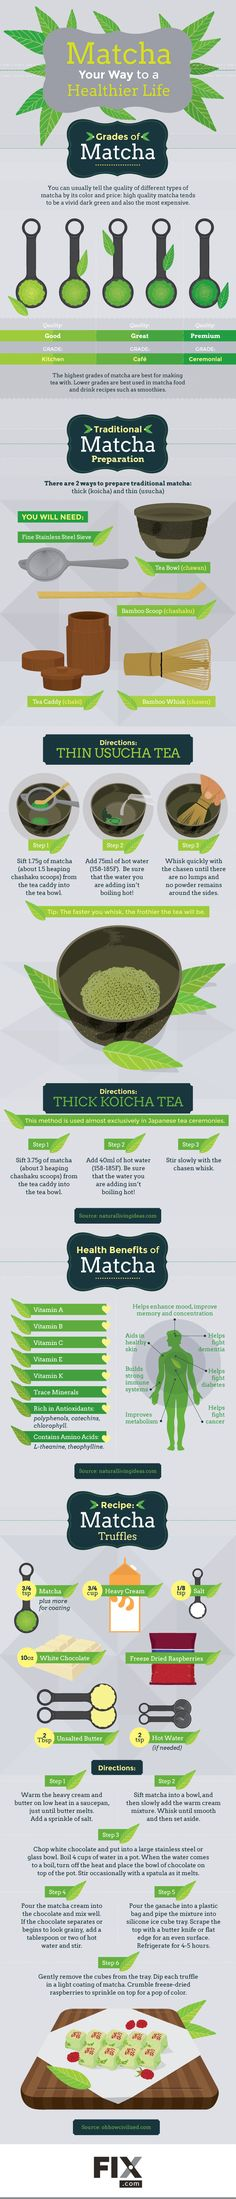 Learn how to prepare matcha green tea the traditional way, and with a modern twist with our guide!